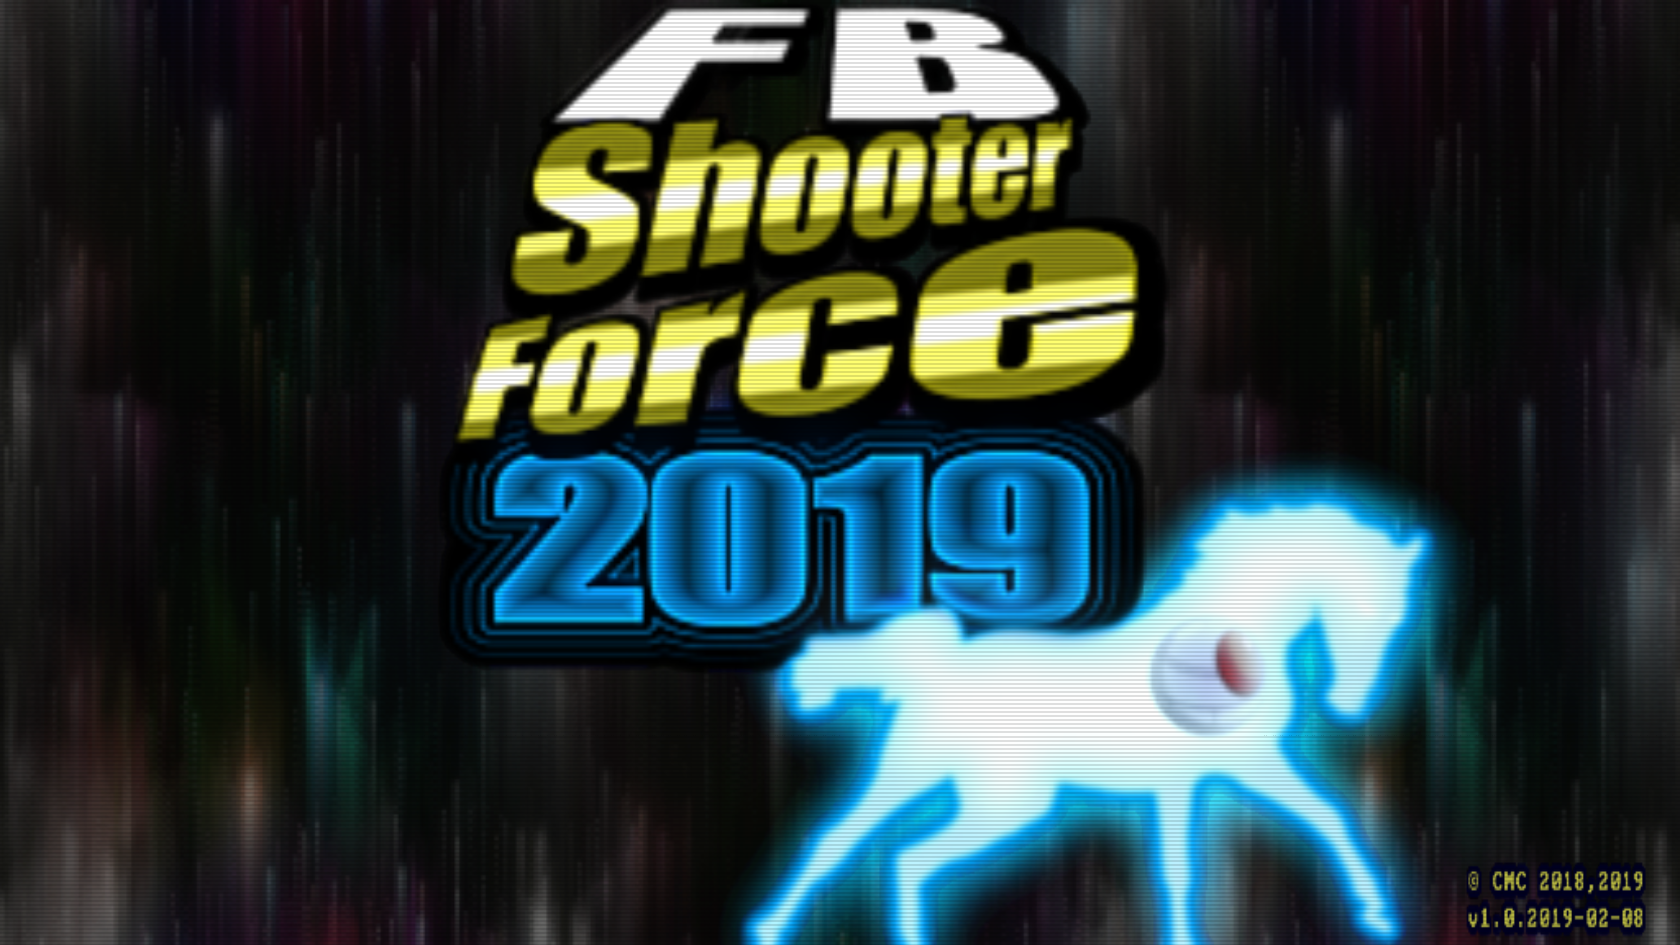 Download web tool or web app FB Shooter Force 2019 to run in Linux online